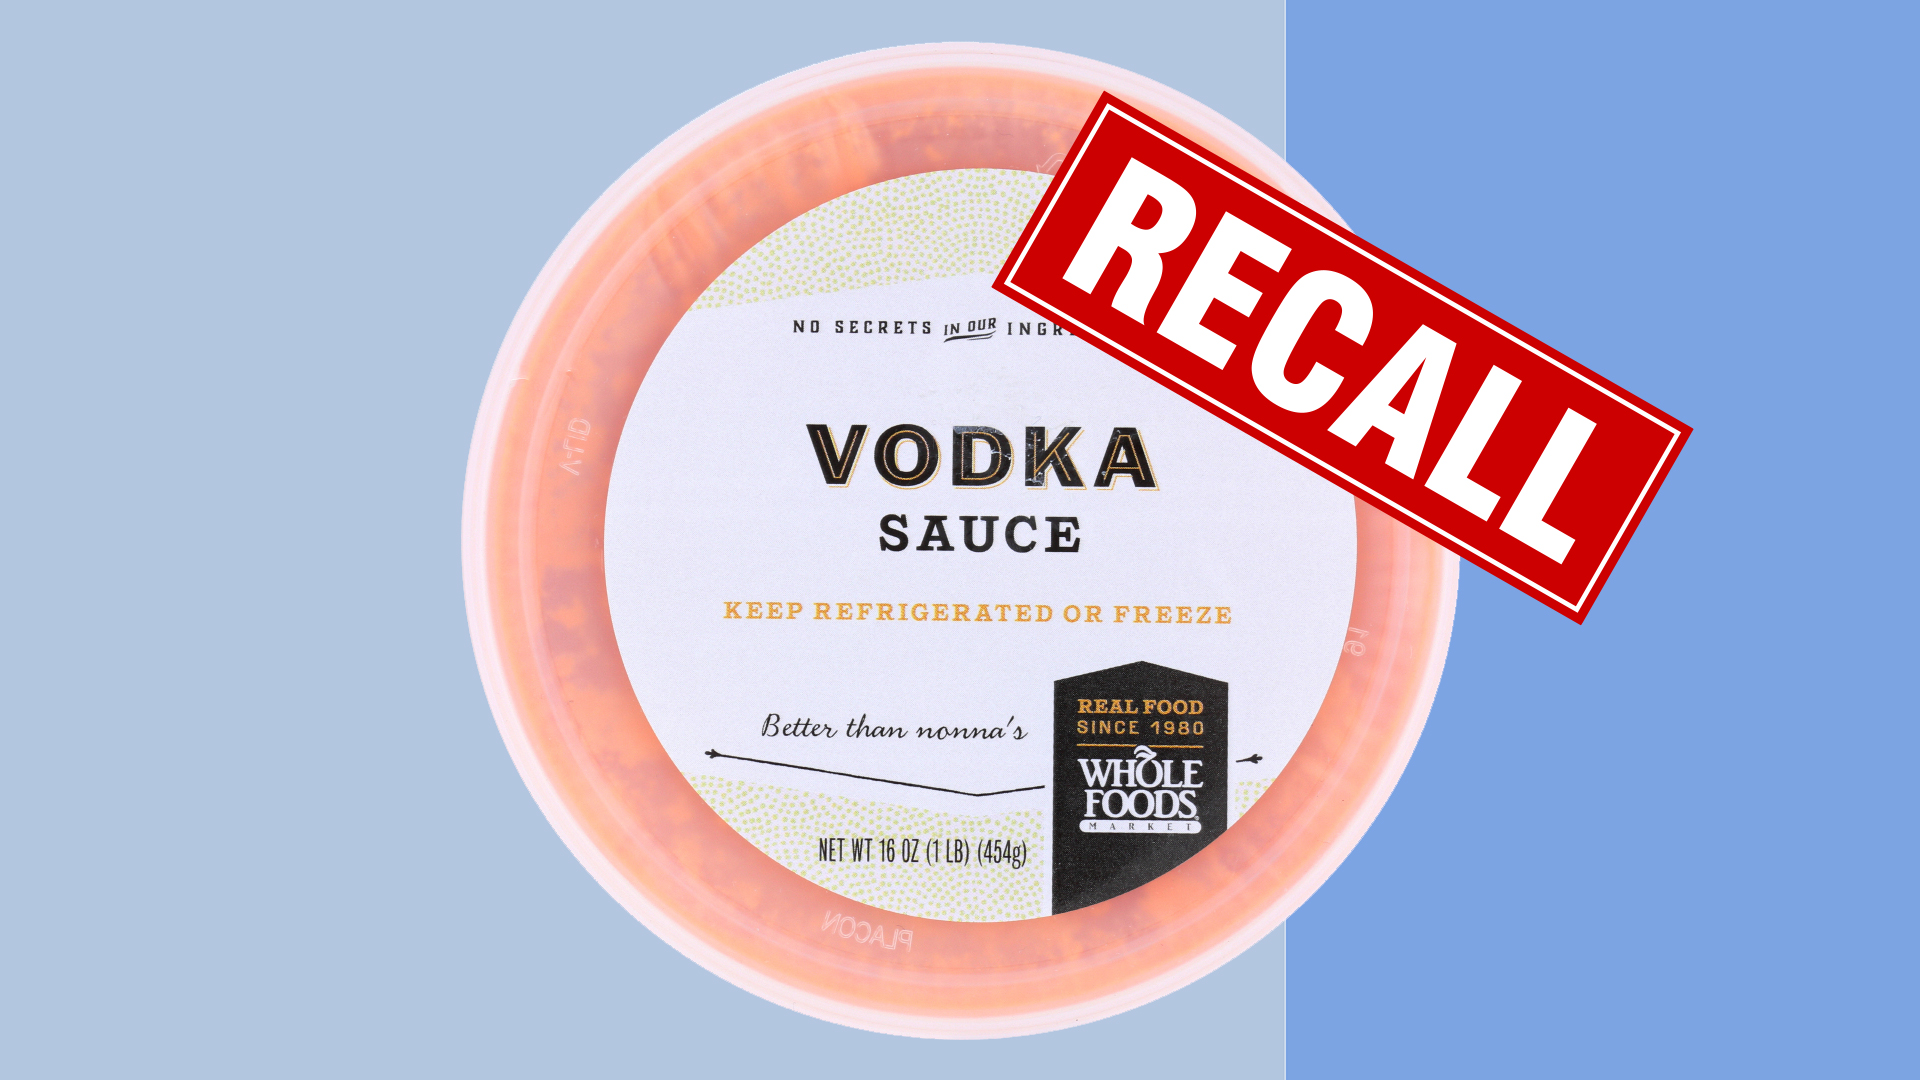 recall-whole-foods-vodka-sauce